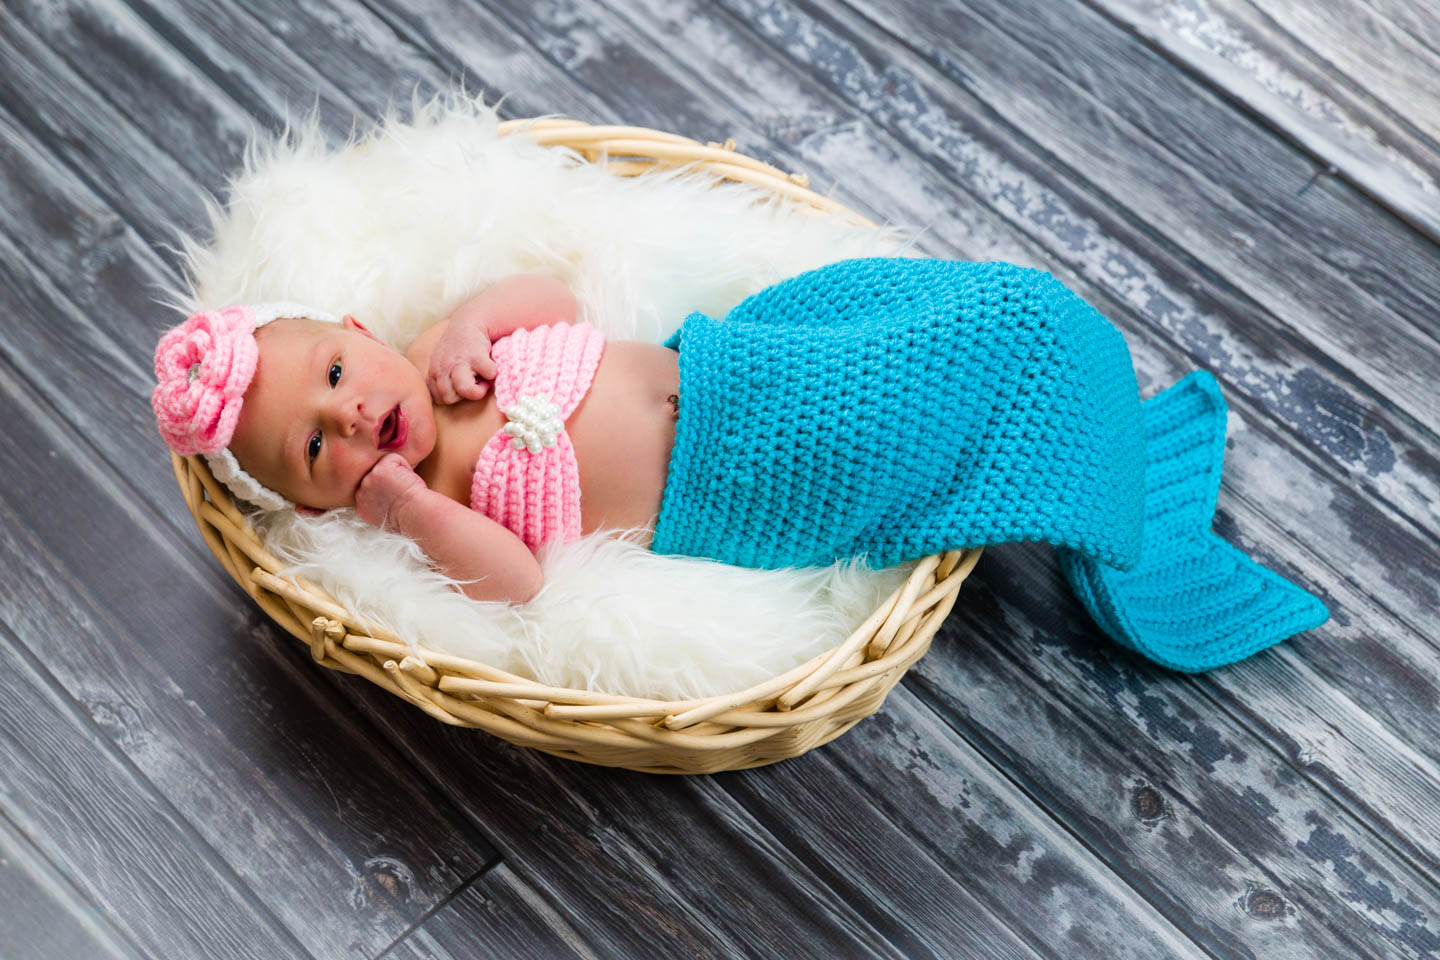 Harper had a knitted mermaid outfit